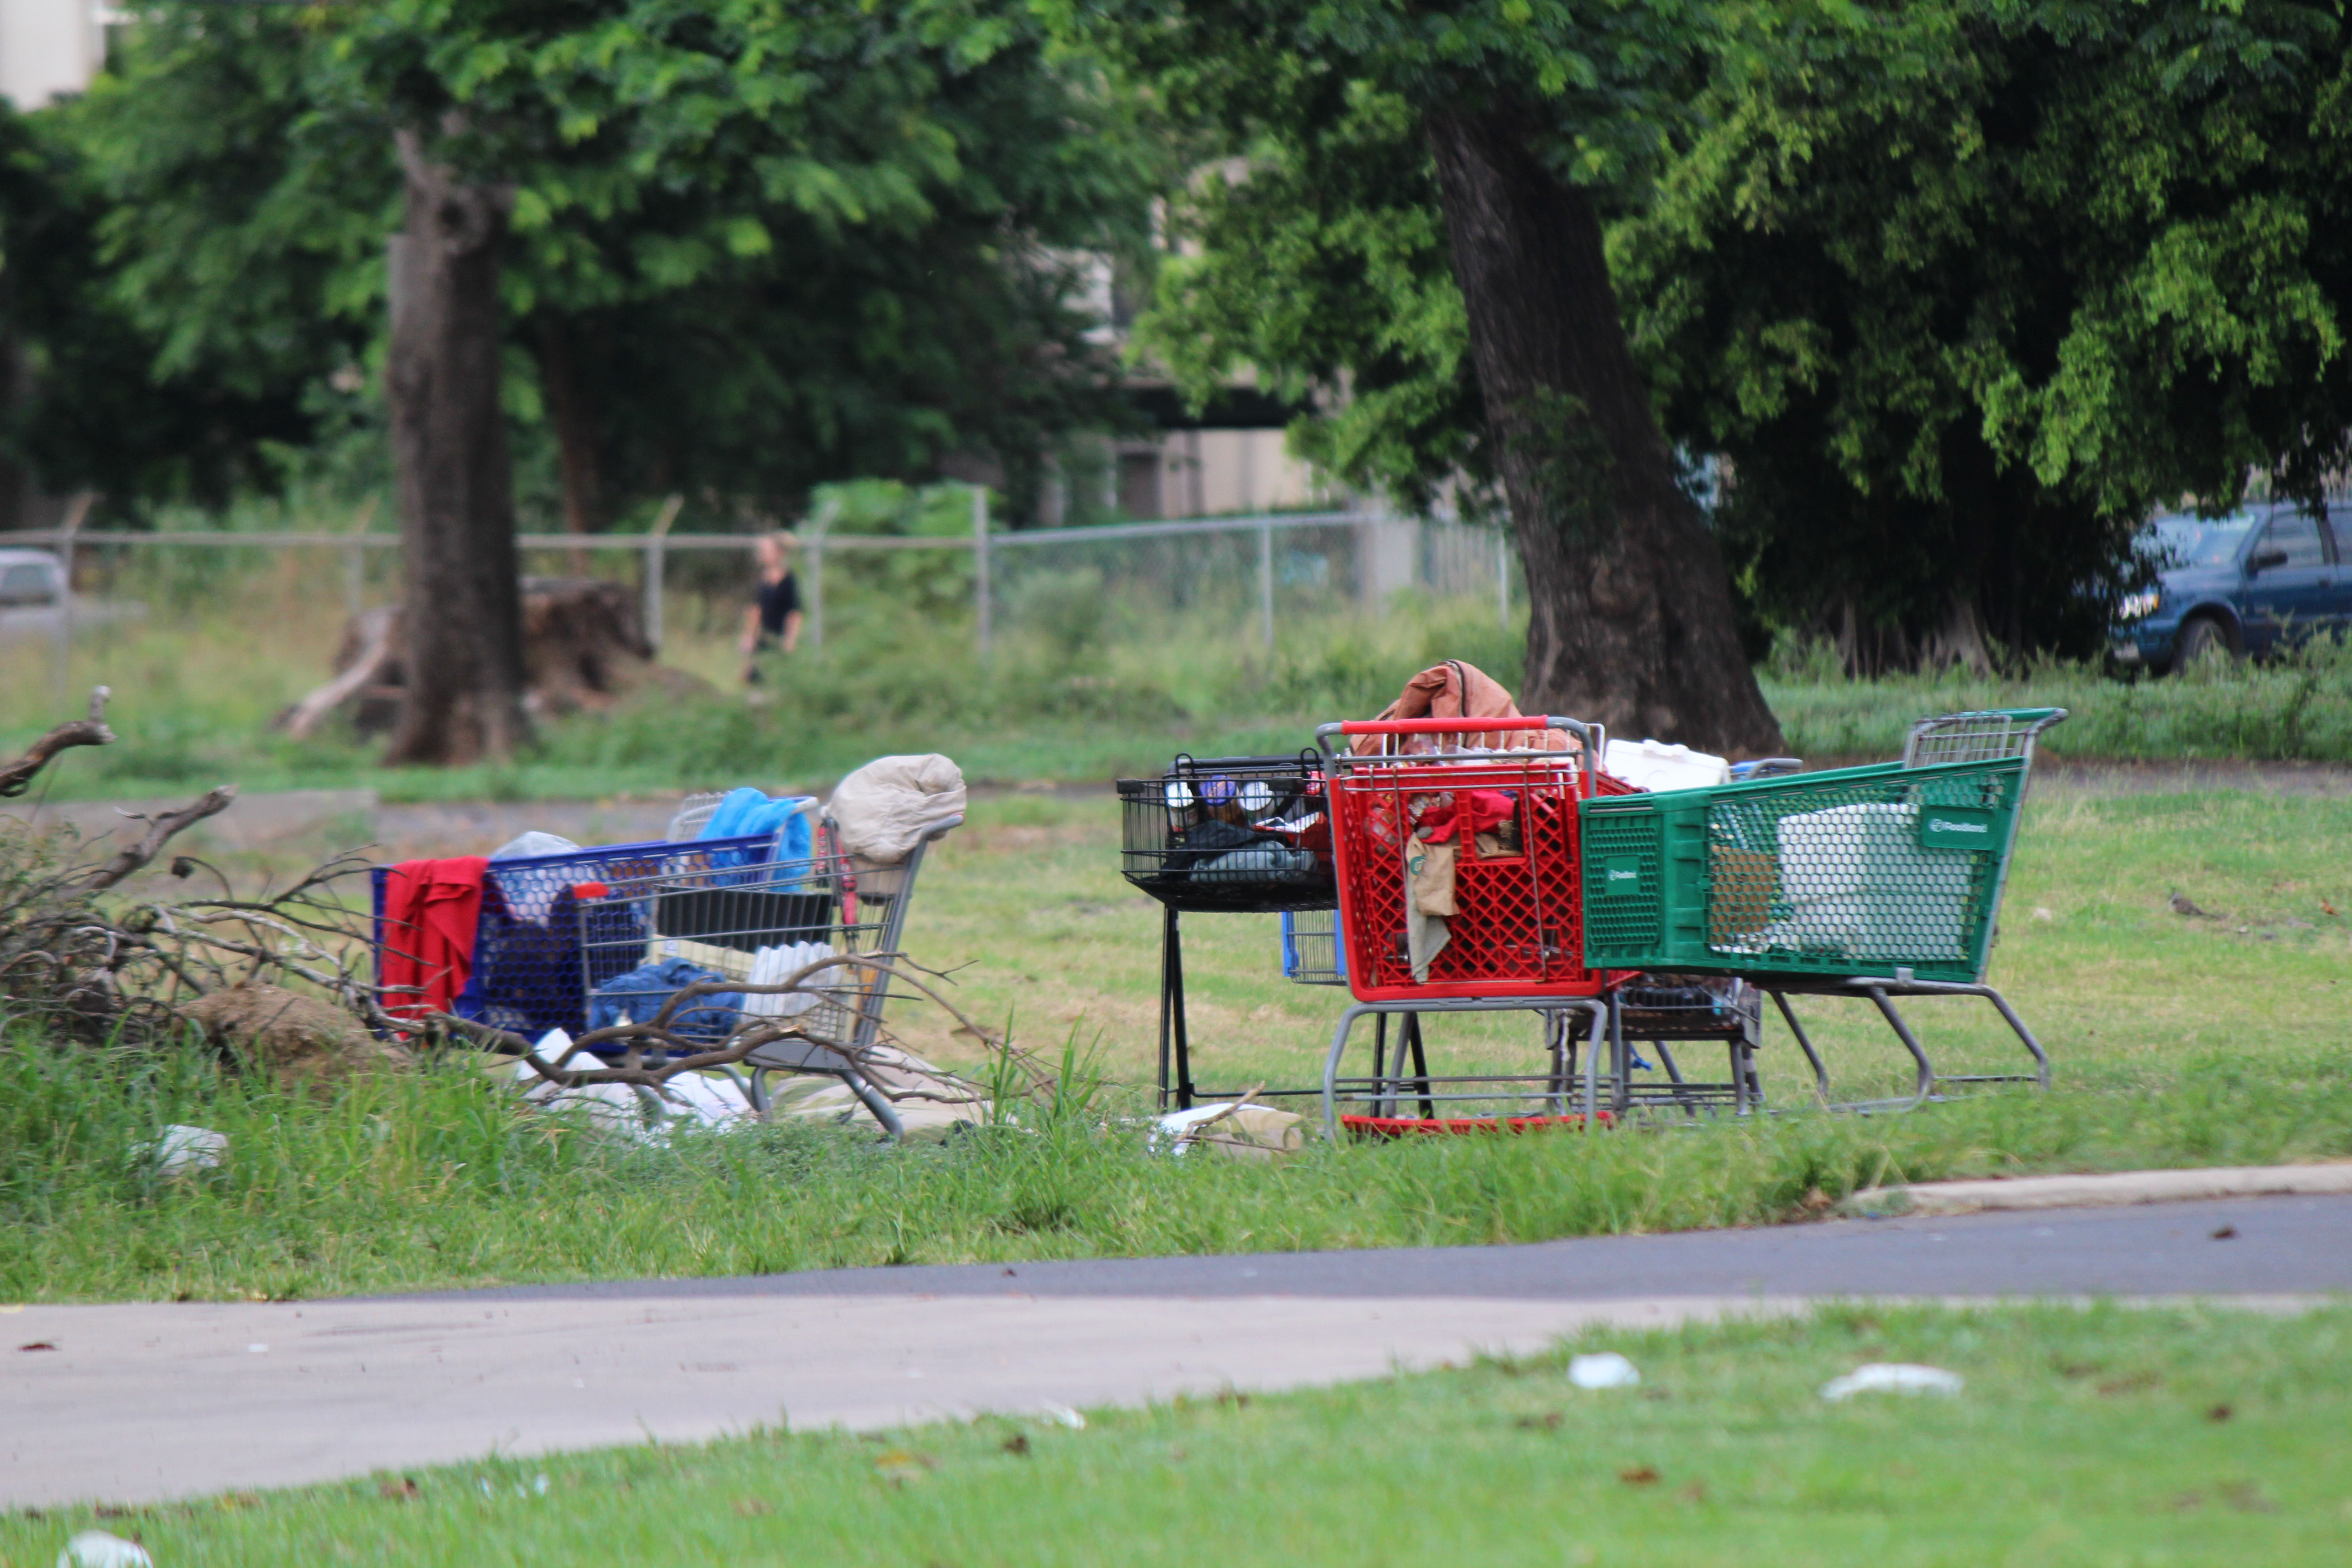 Shopping carts used by homeless individuals in the vacant lot next to the Family Life Center in Kahului. Photo by Wendy Osher.